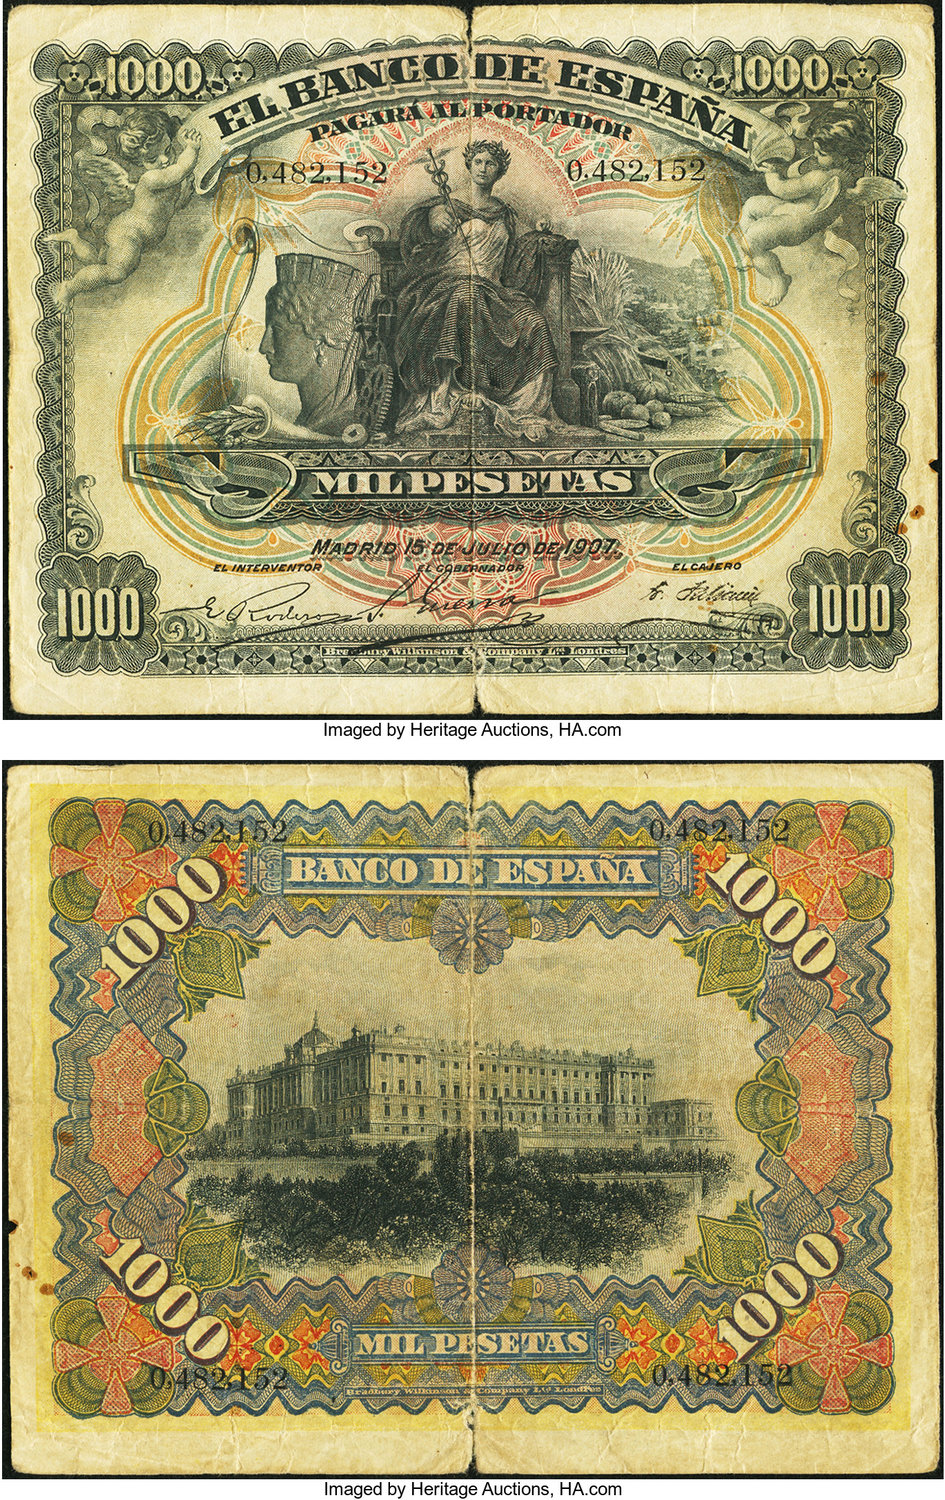 World Currency Spain Banco De Espana 1000 Pesetas 15 7 1907 Pick 66 There Are Splits Along The Center Fold As Well